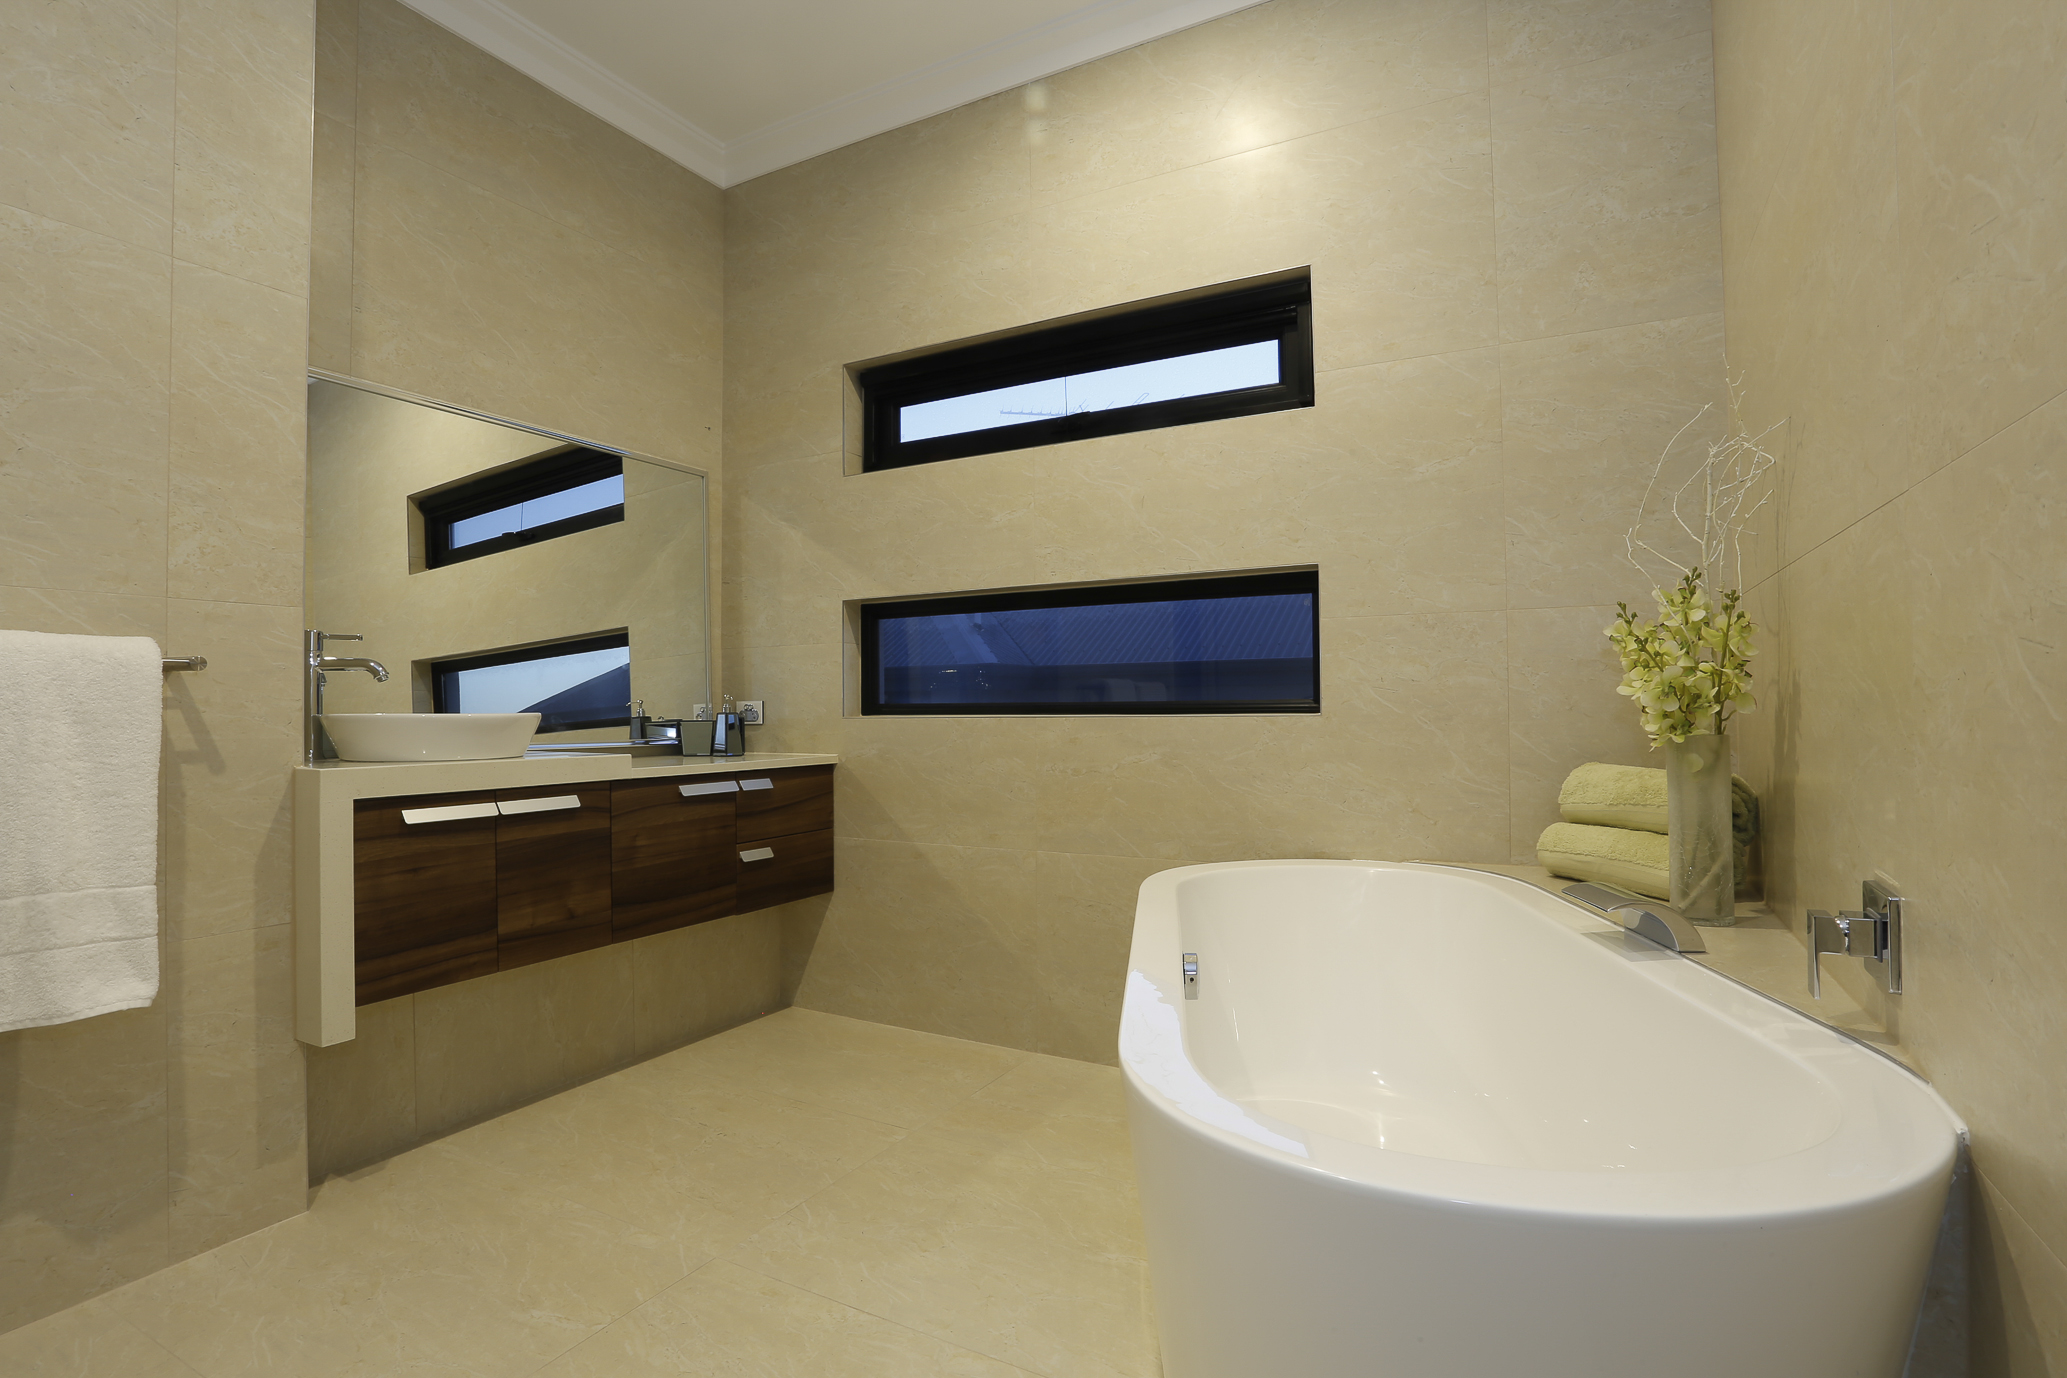 Home Innovation Builders - Extensions Renovations - extensions-renovations-1